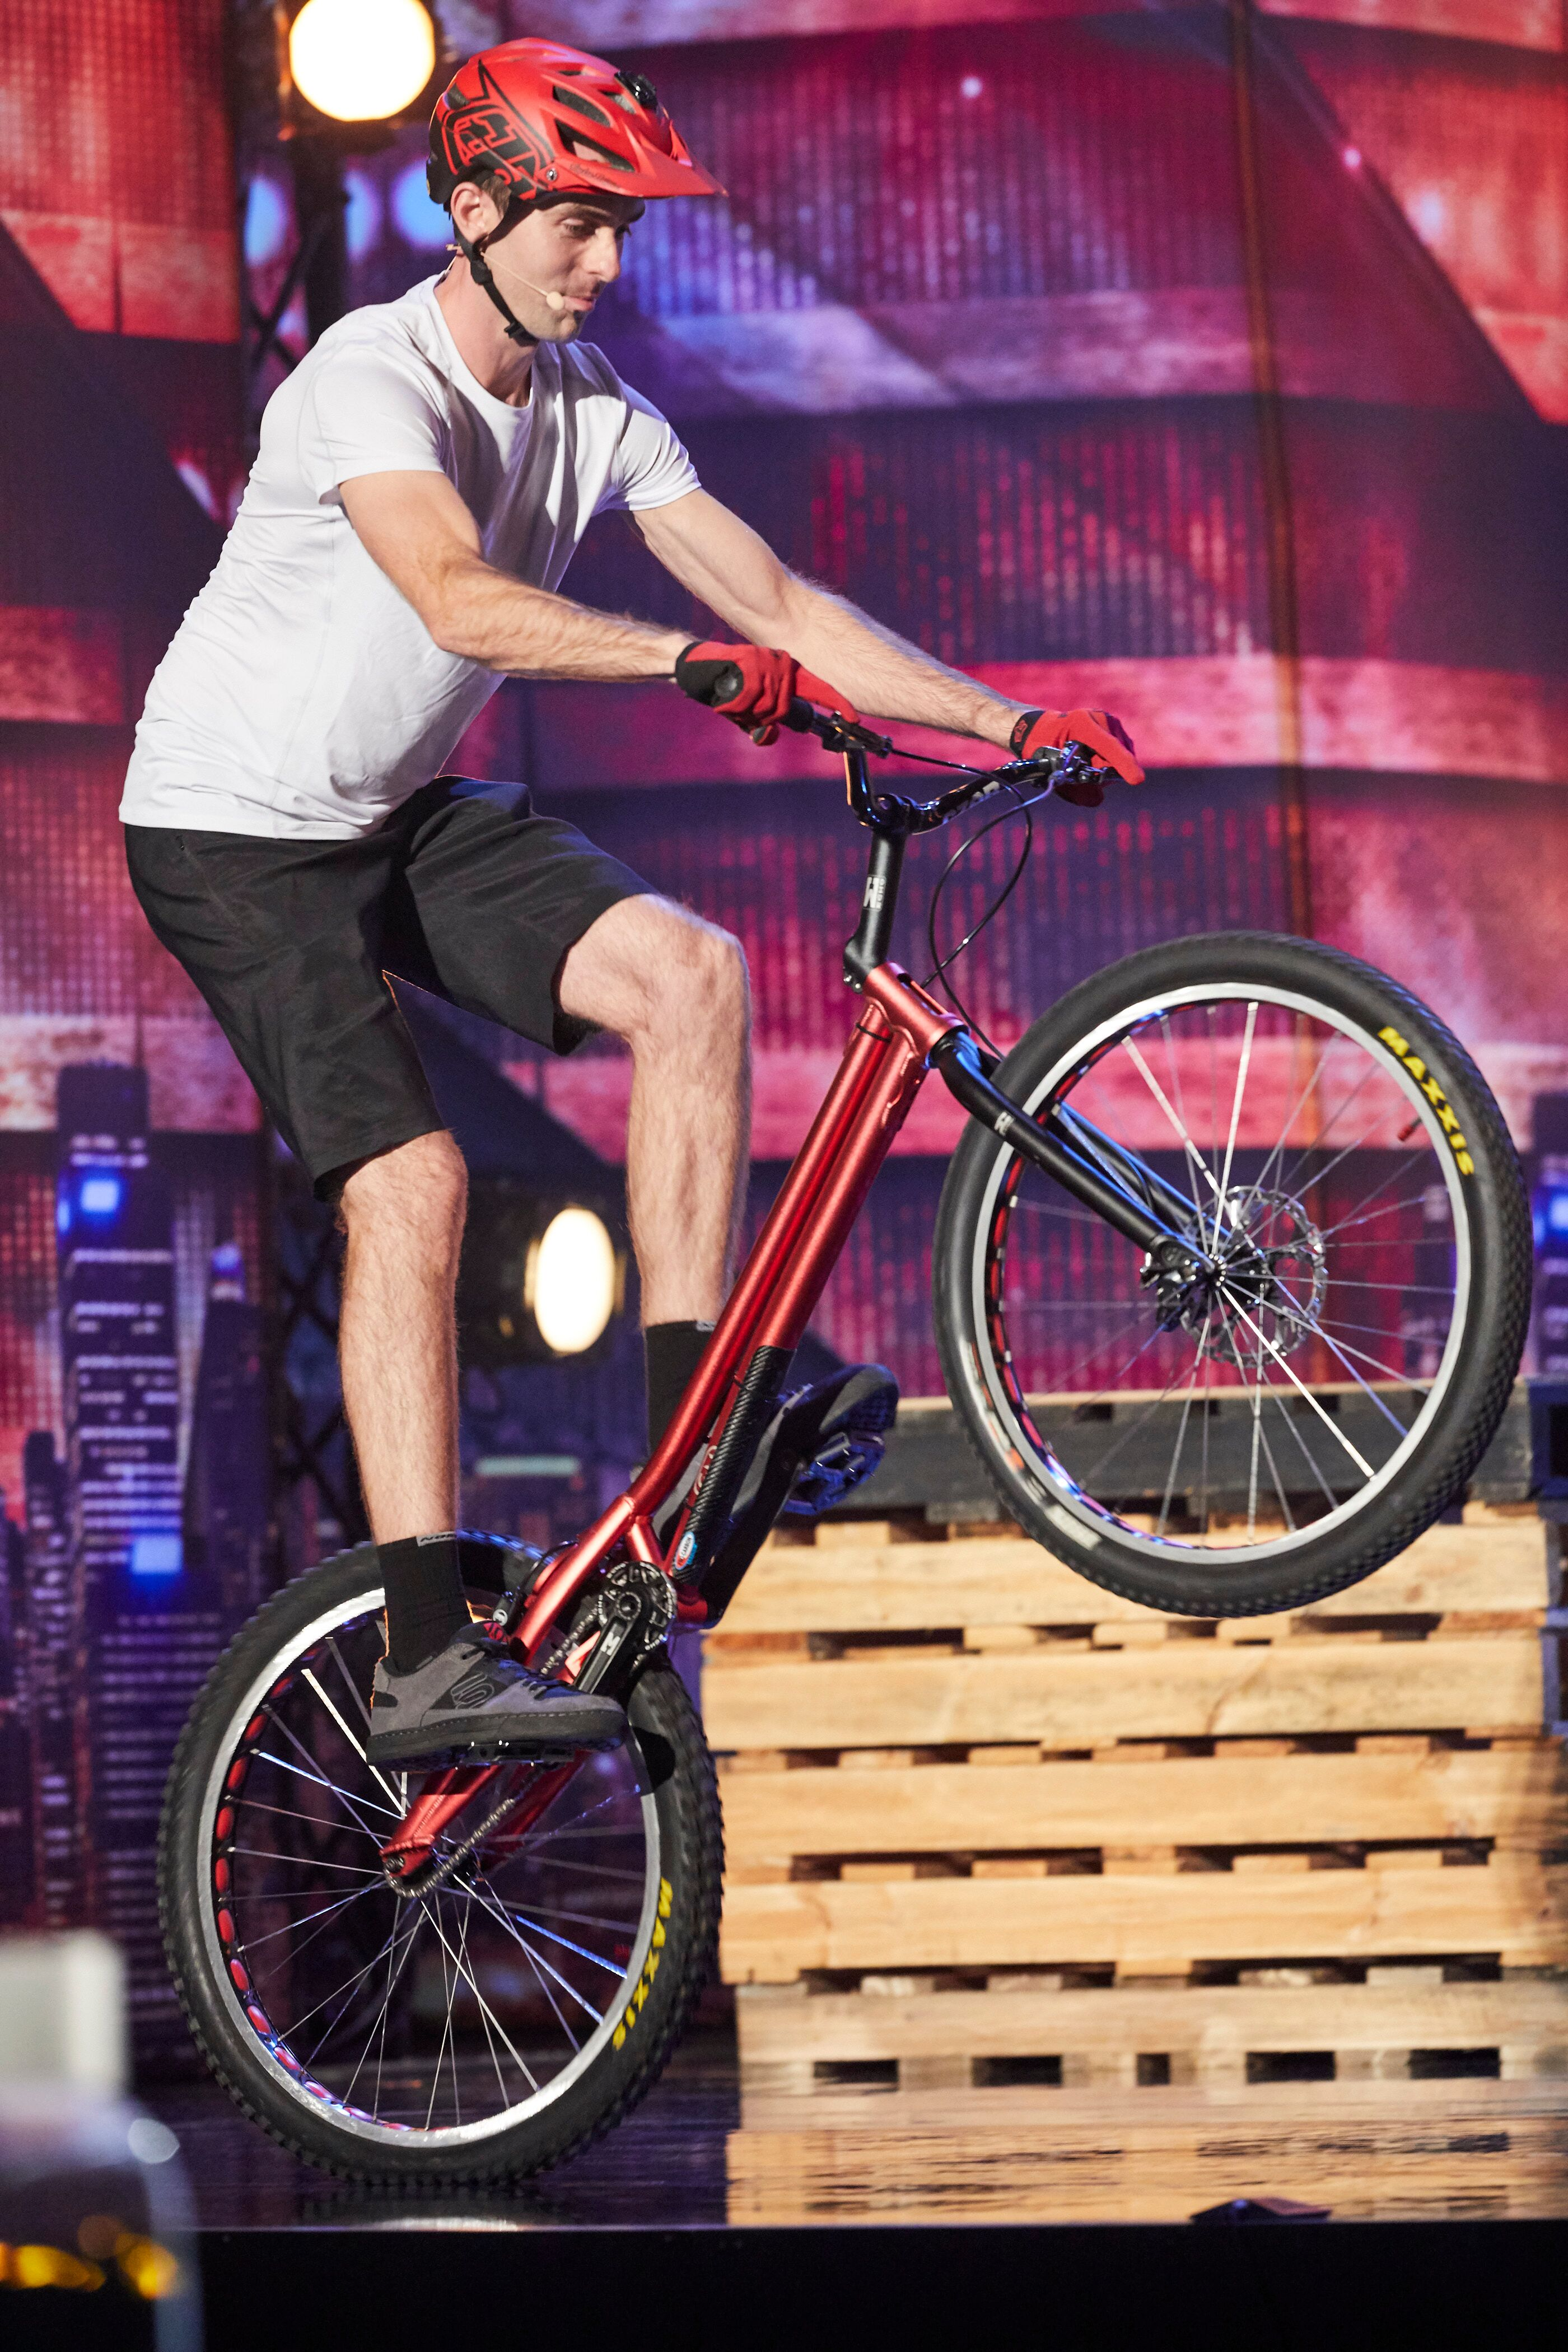 Australia's Got Talent goes for a ride